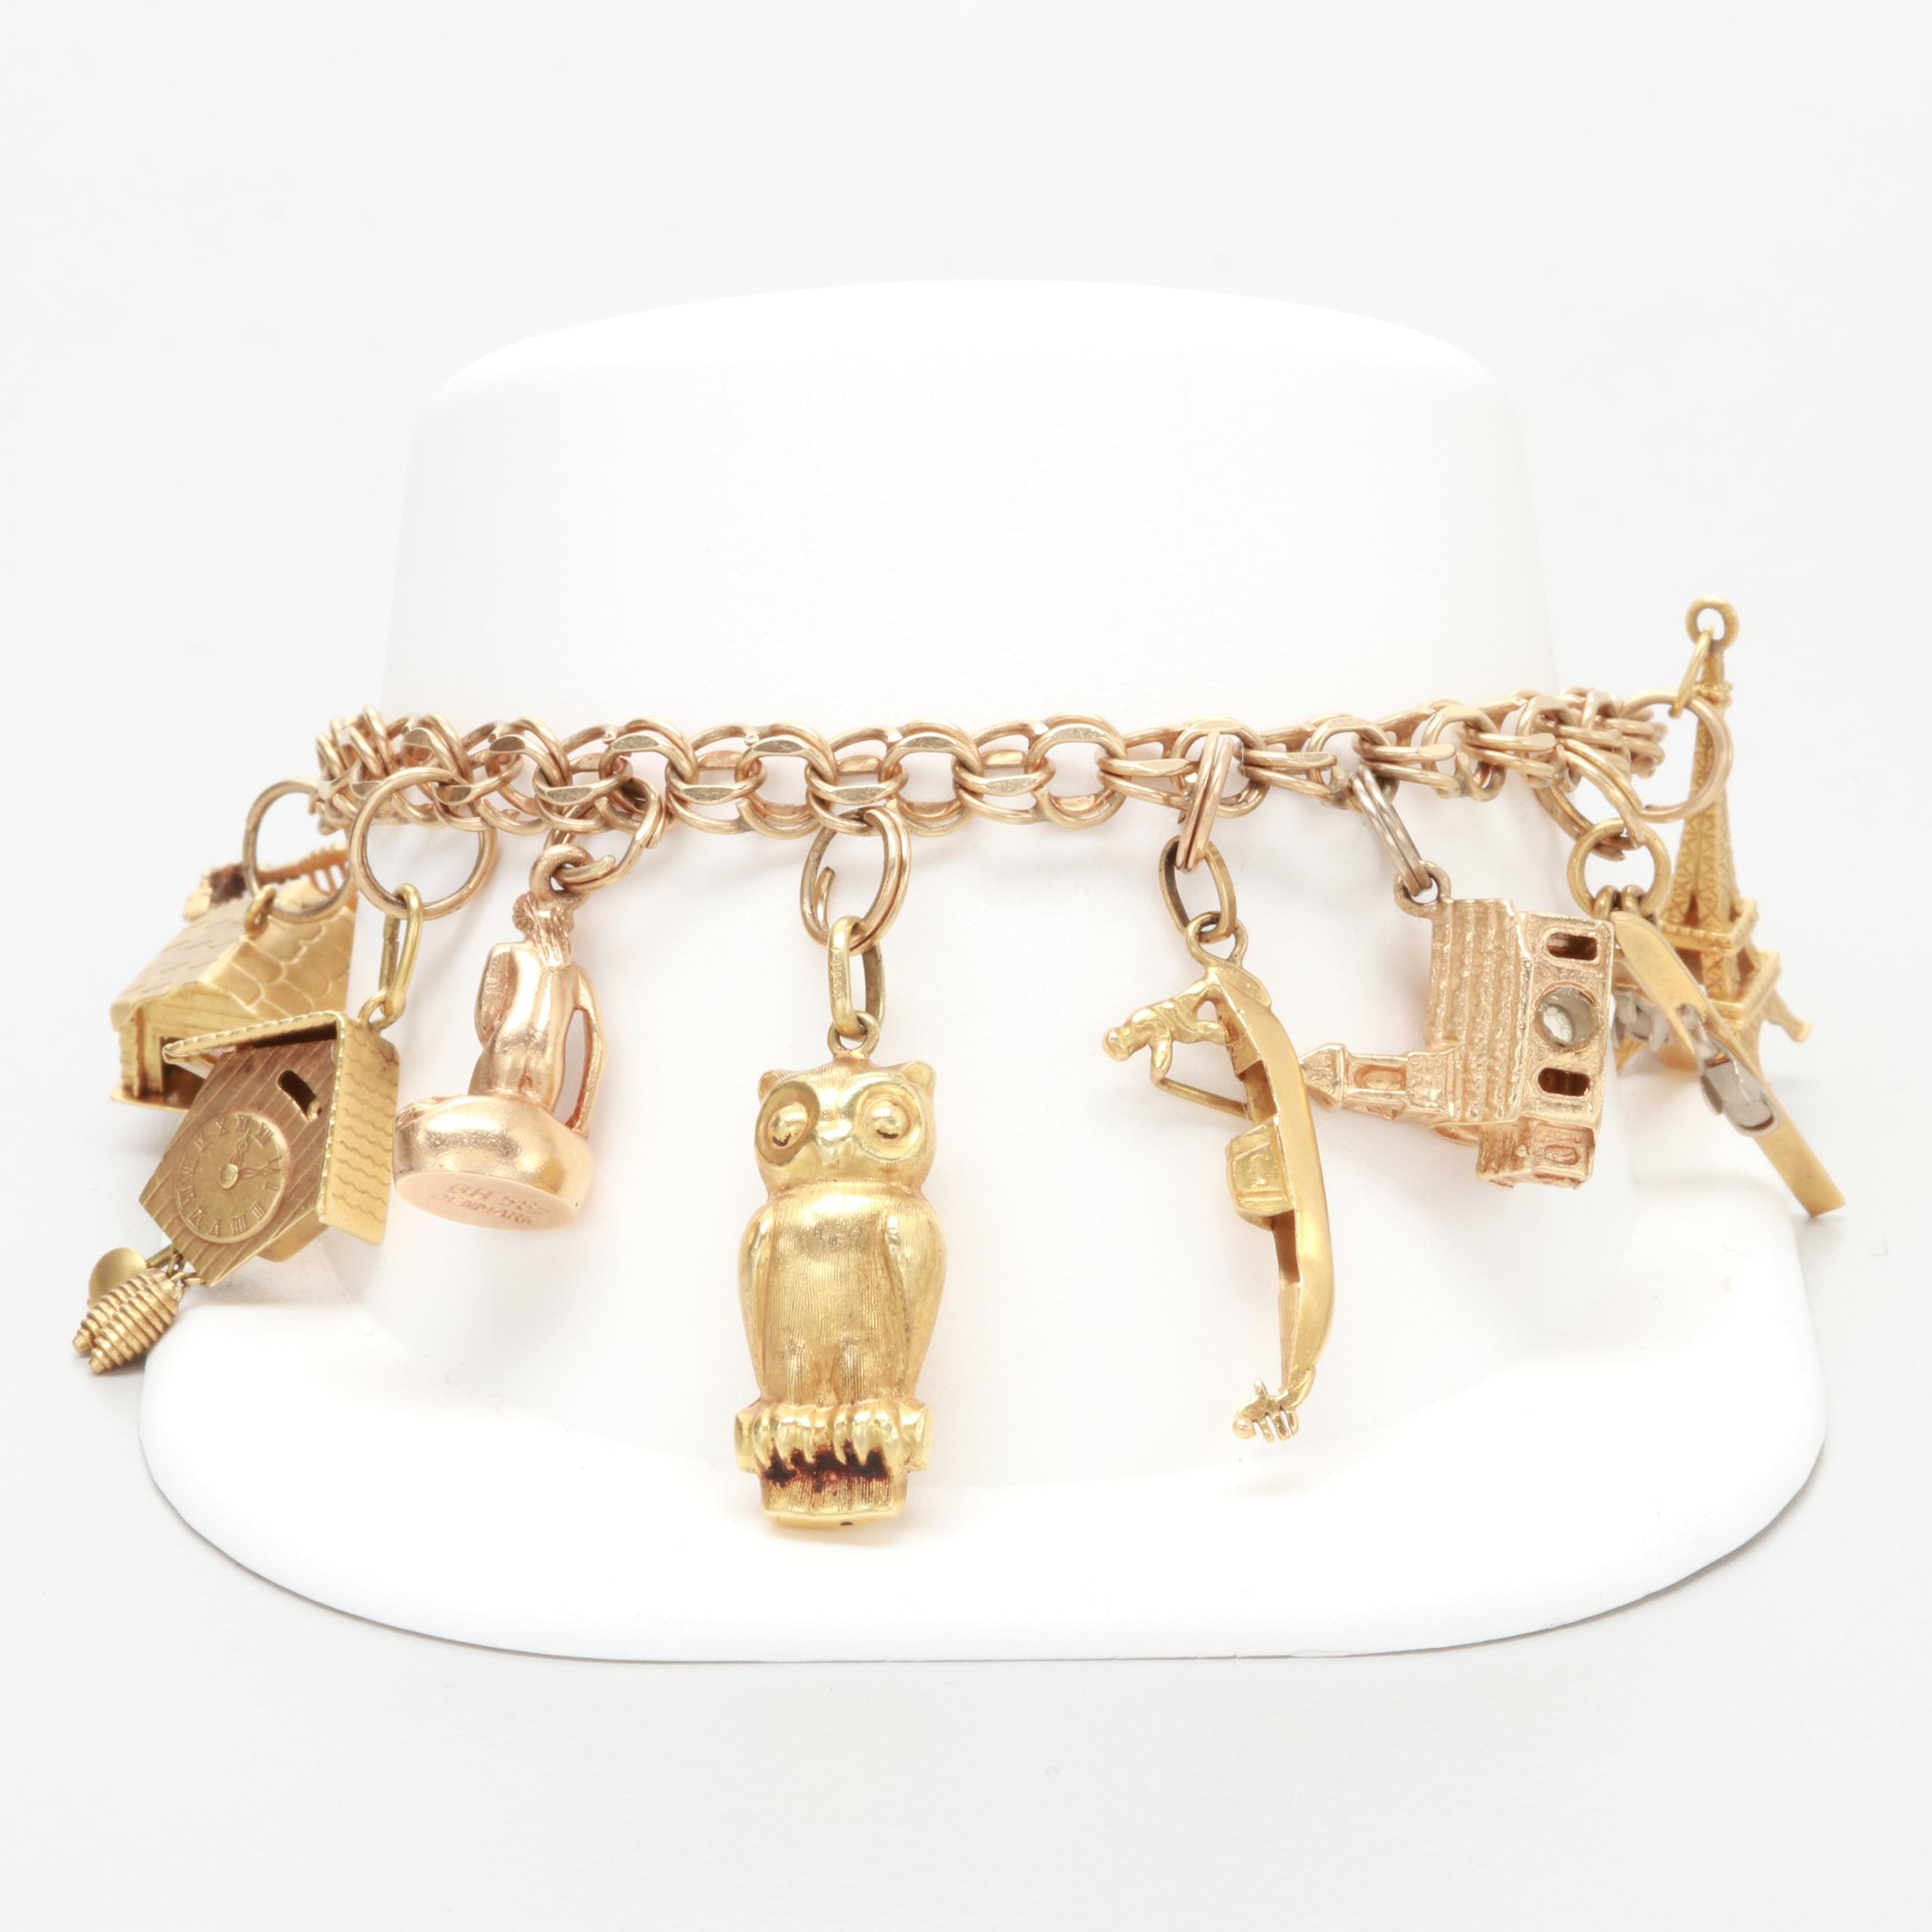 Vintage 14K Yellow Gold Charm Bracelet with 18K, 14K and 9K Gold Charms